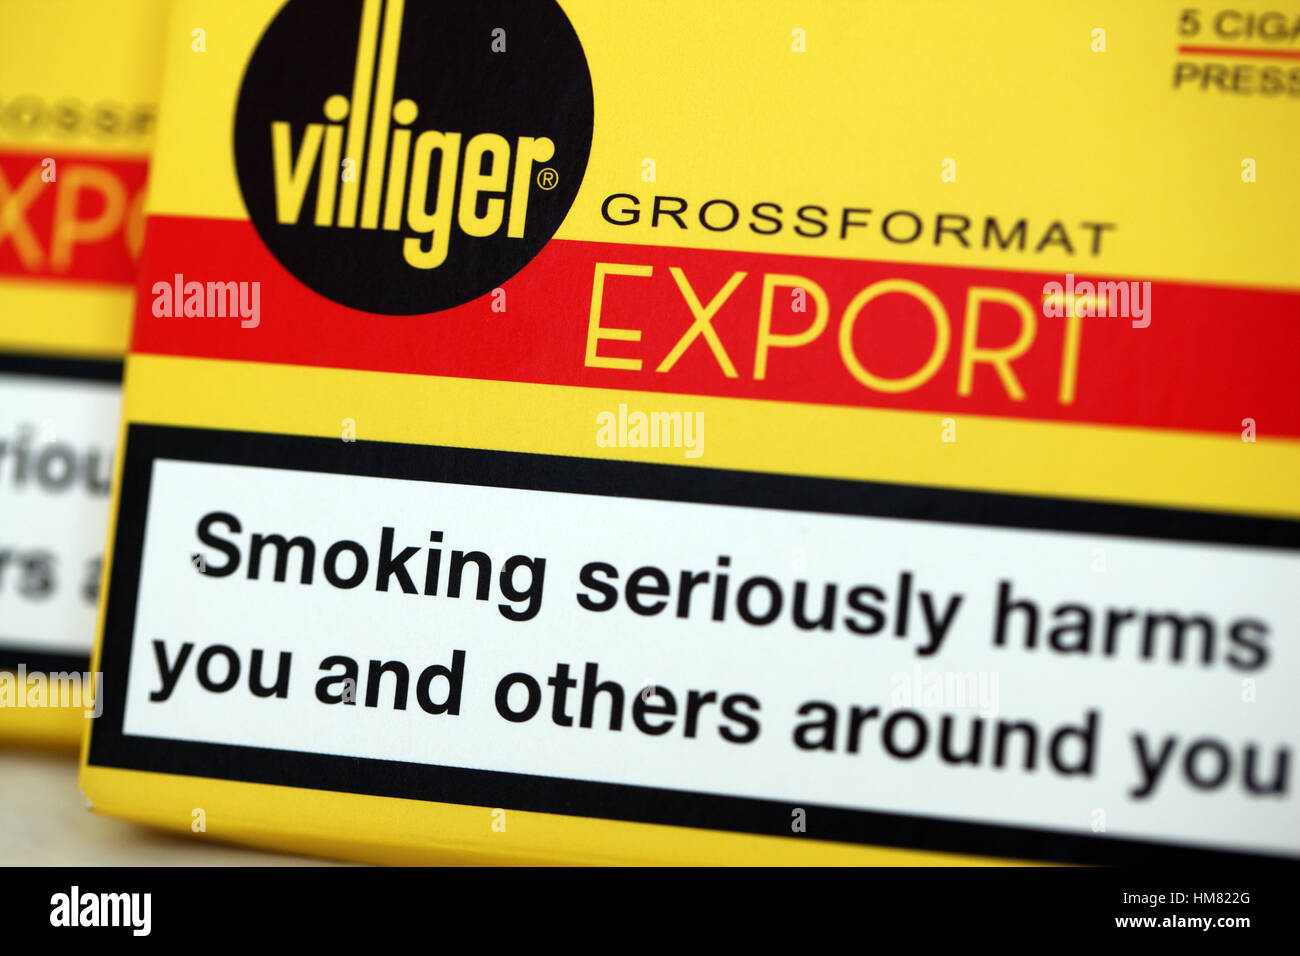 Health warnings on a packets of Villiger cigars - Stock Image